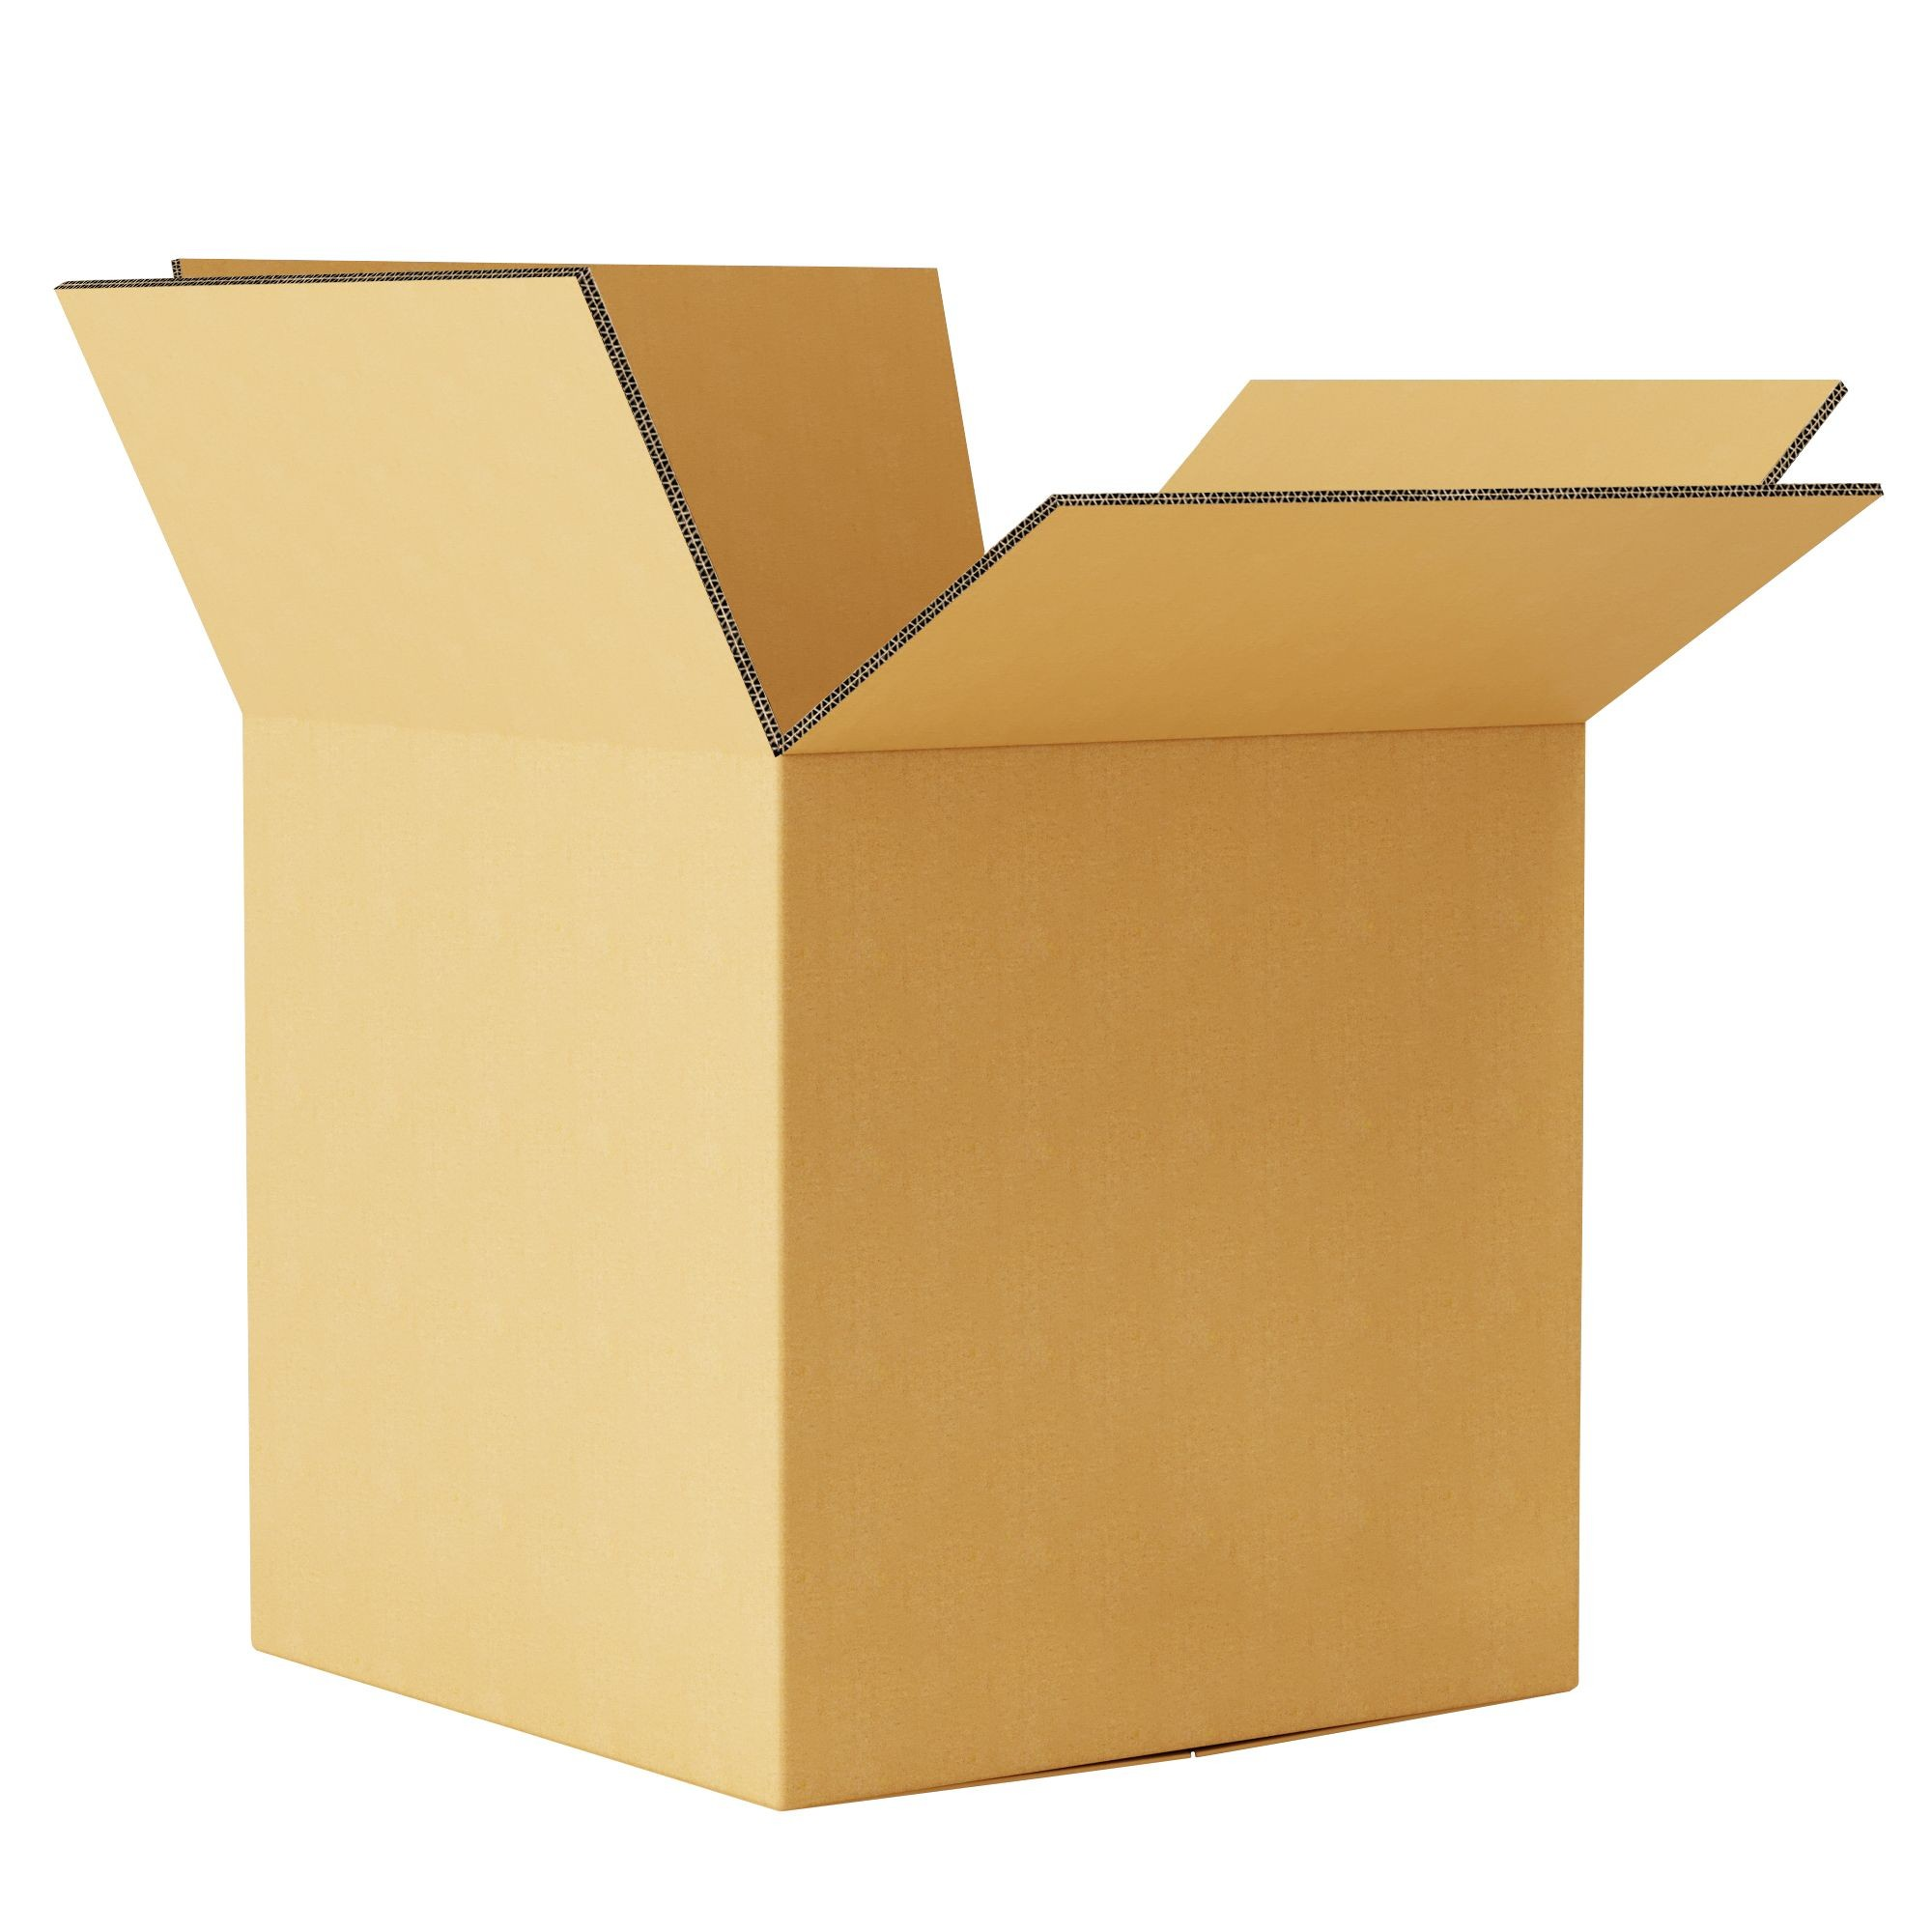 "TOTALPACK® 16 x 16 x 16"" Double Wall Corrugated Boxes 15 Units"